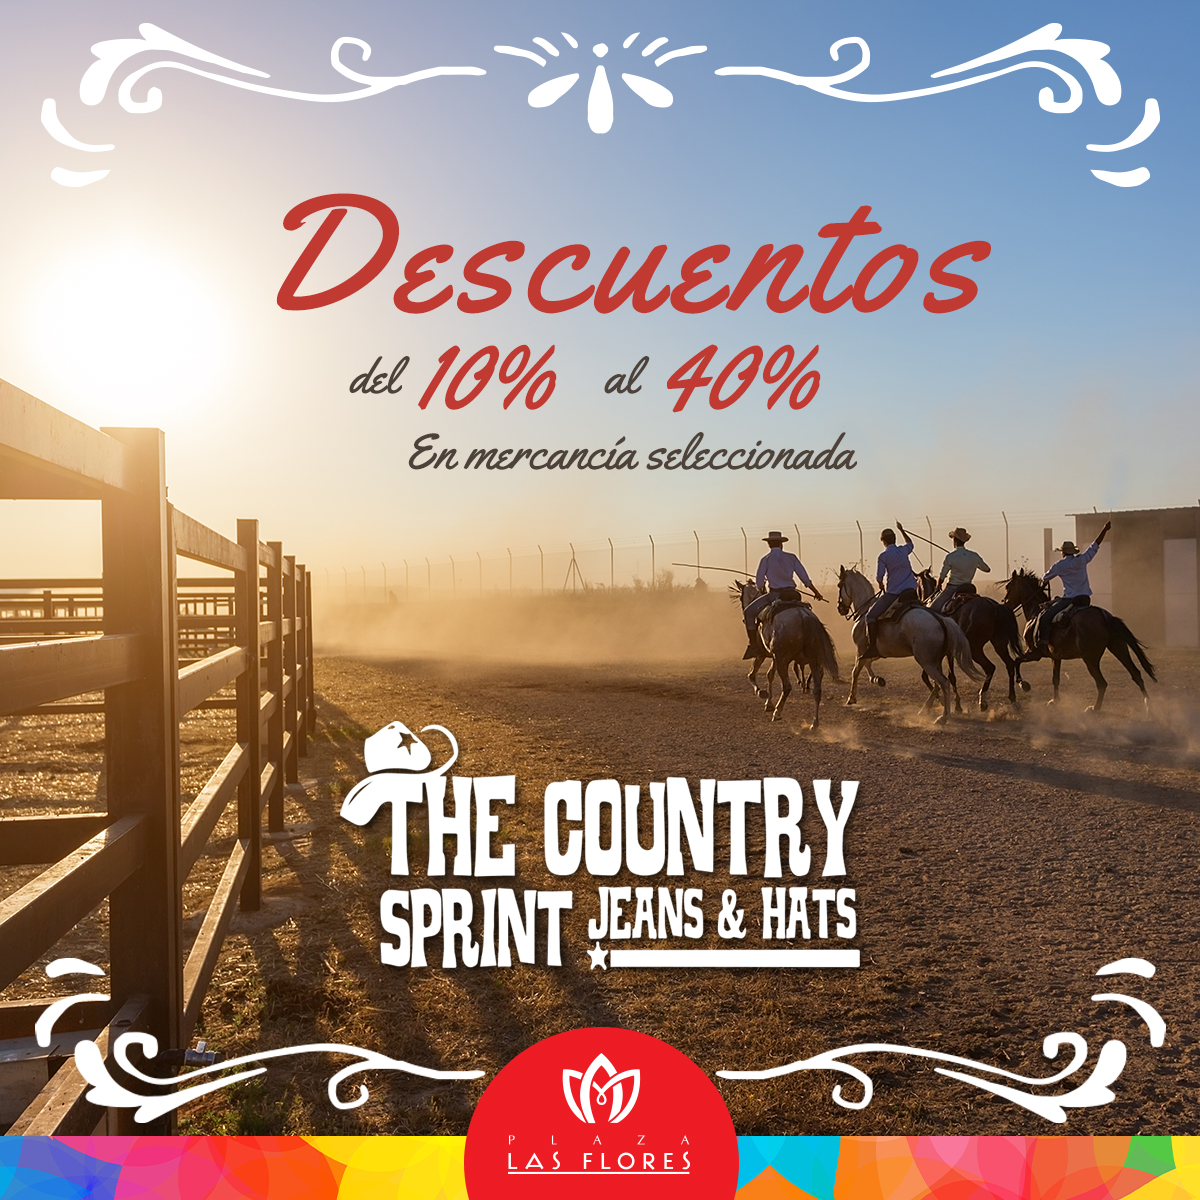 LasFlores-Ofertas-CountrySpirit copy